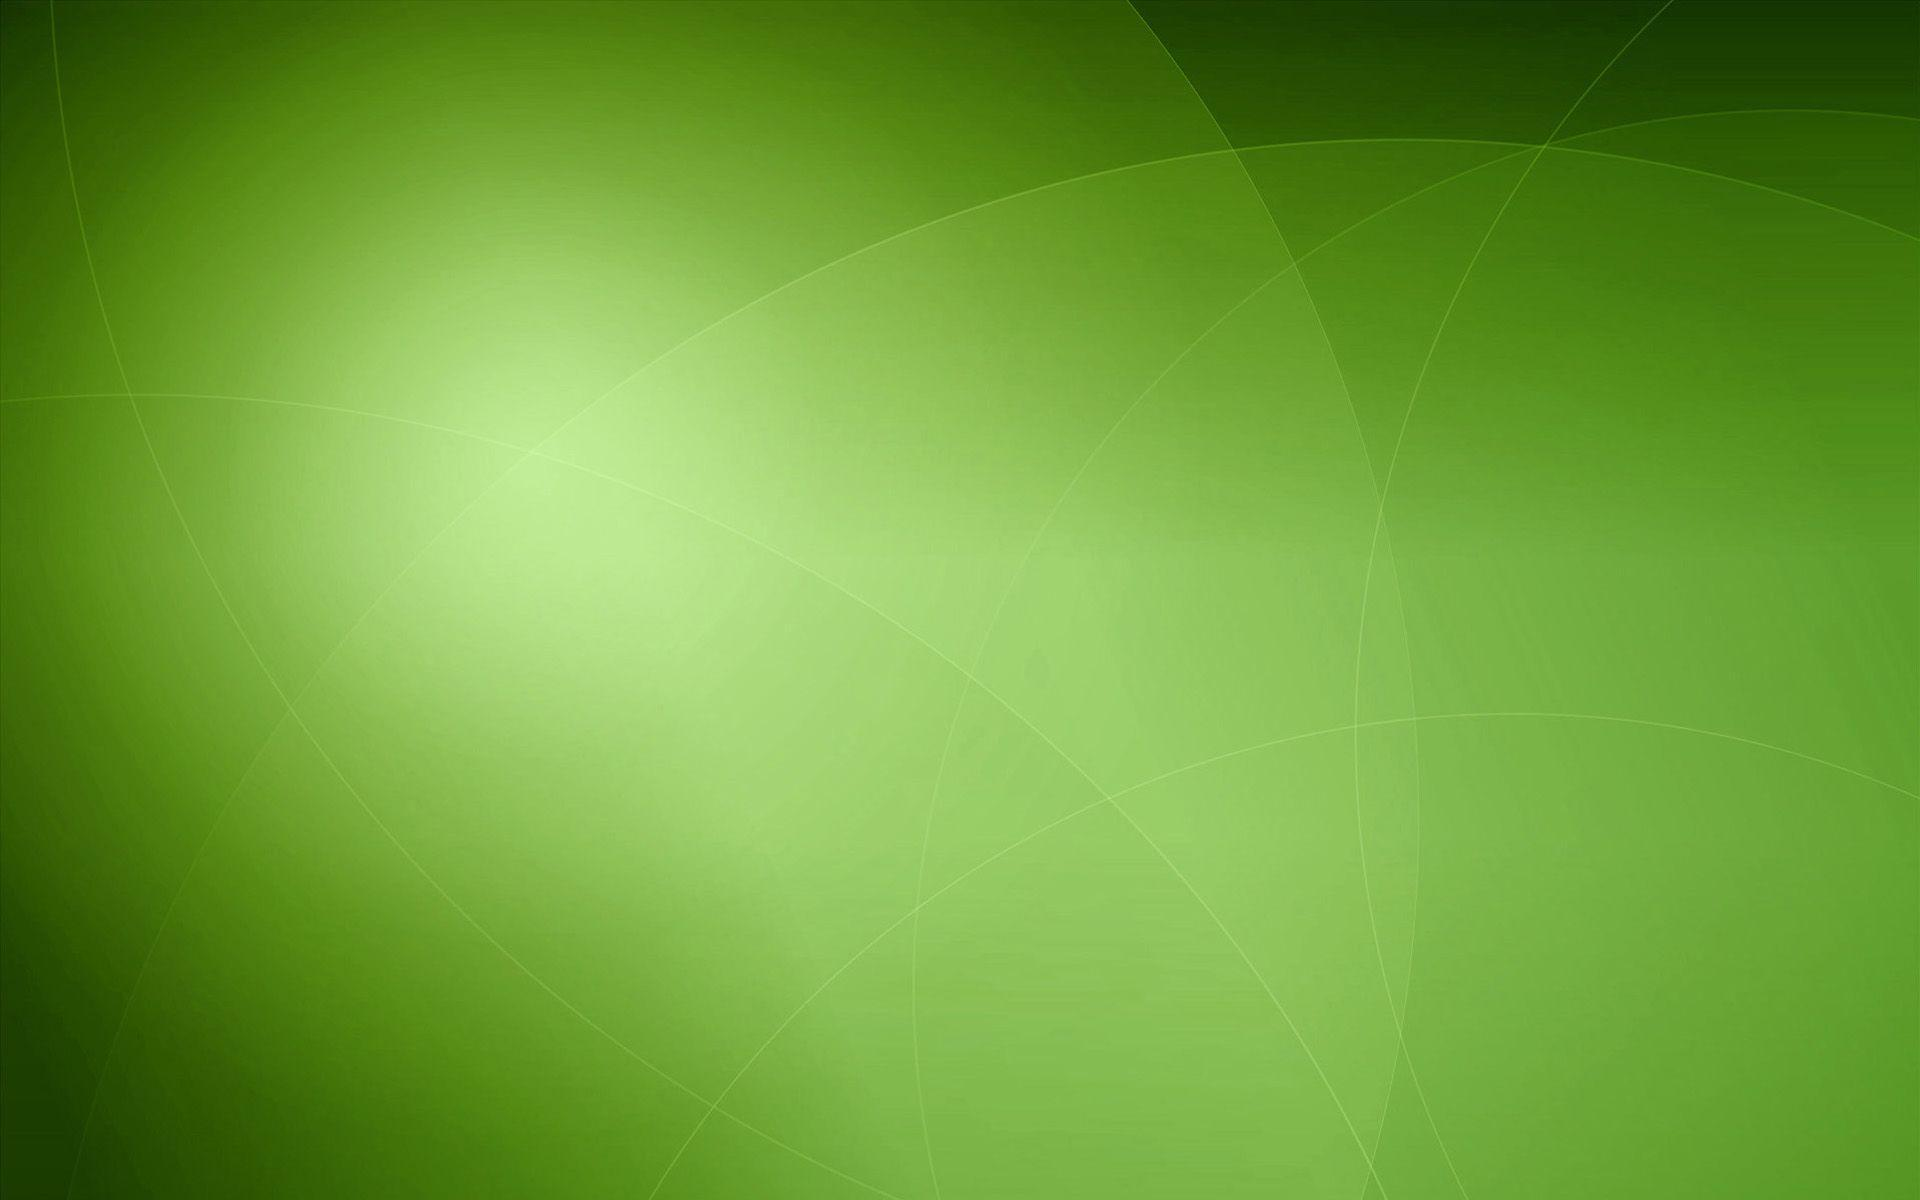 Green backgrounds wallpapers wallpaper cave - Photo of wallpaper ...